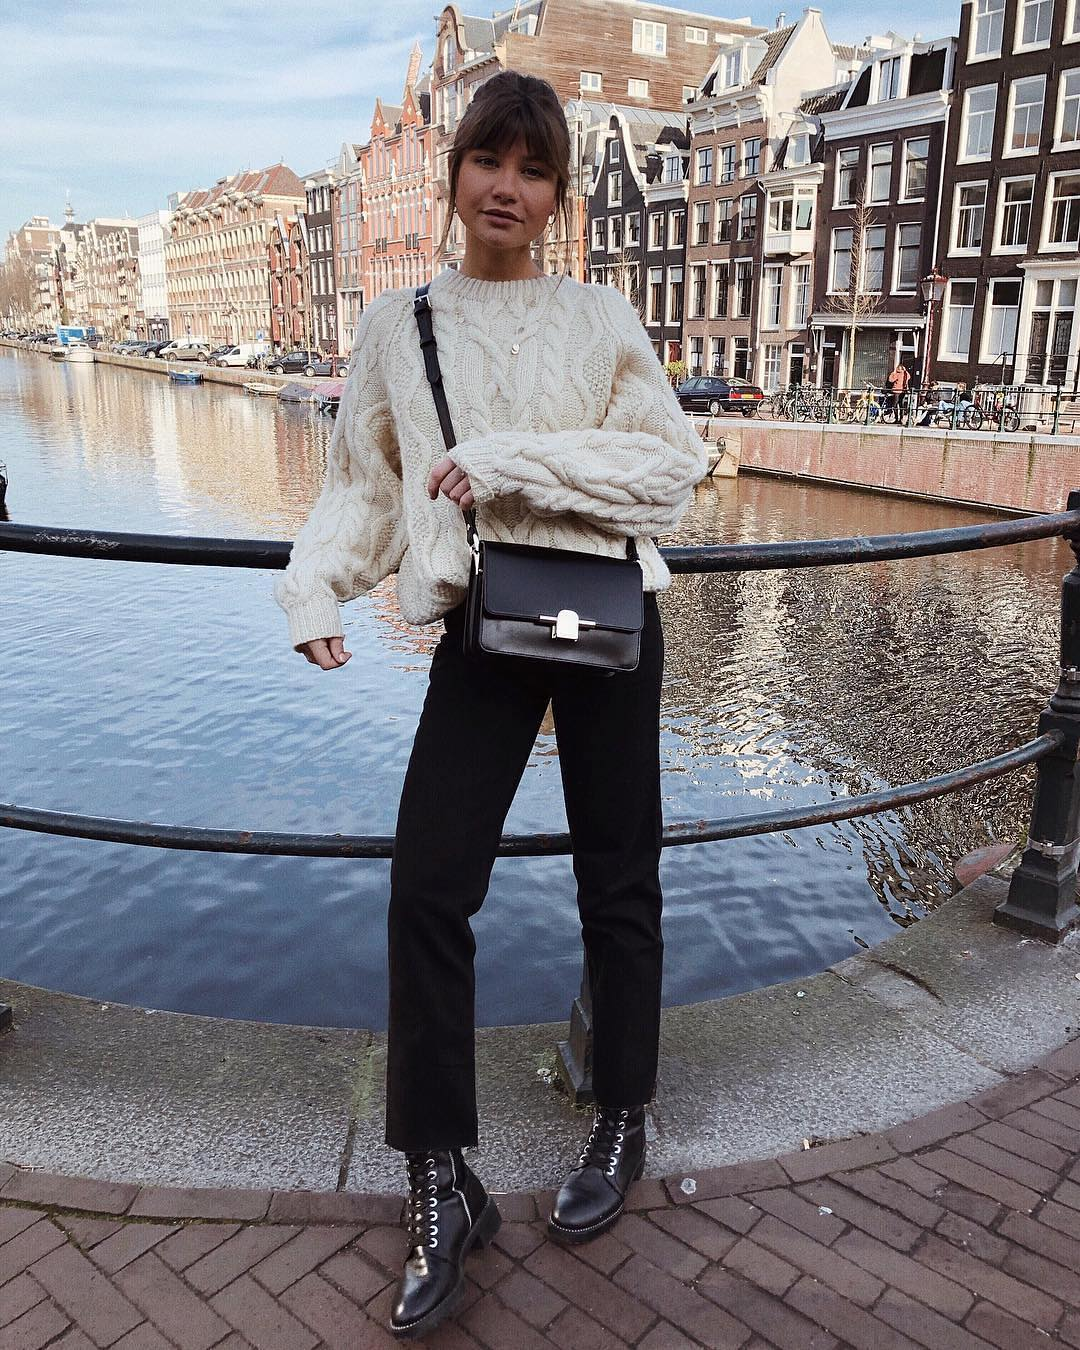 White Sweater And Black Pants For Amsterdam Street Walks 2020